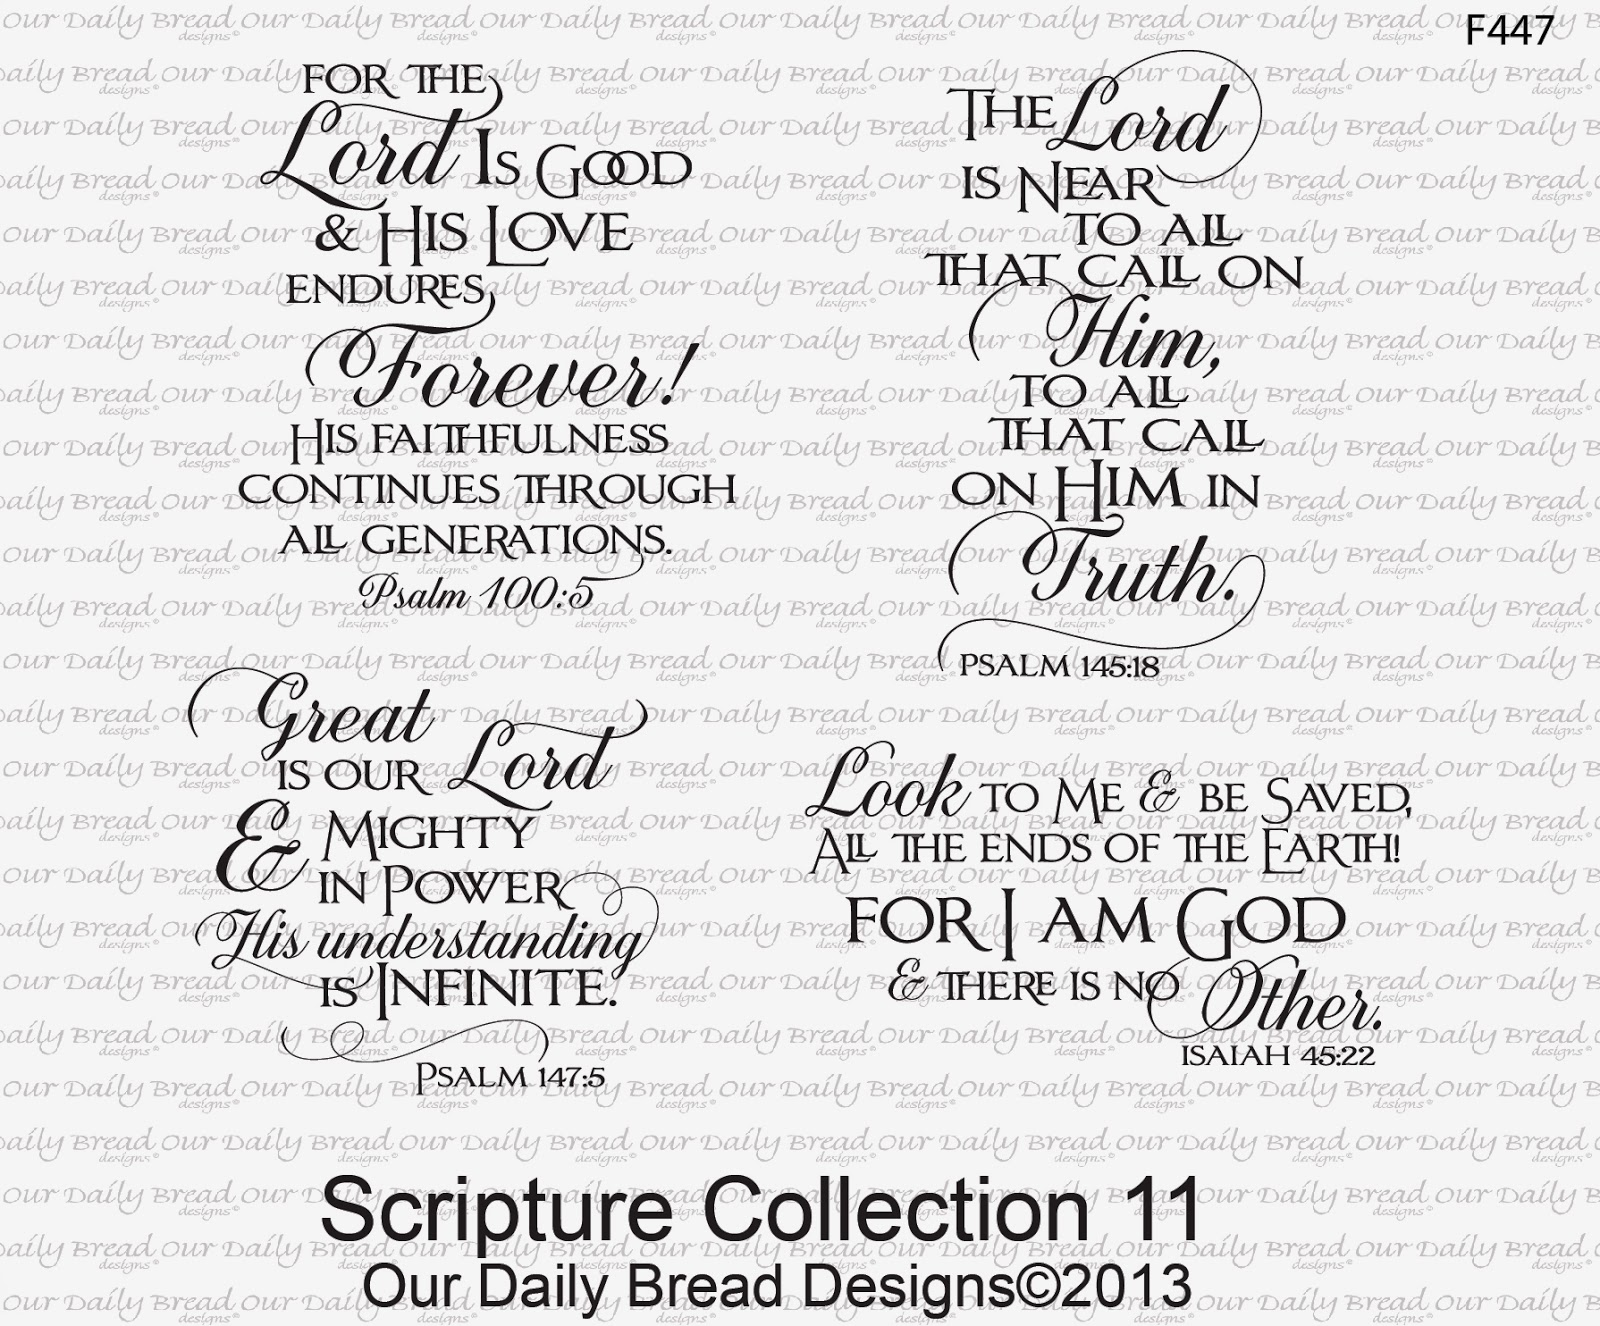 https://www.ourdailybreaddesigns.com/index.php/scripture-collection-11.html